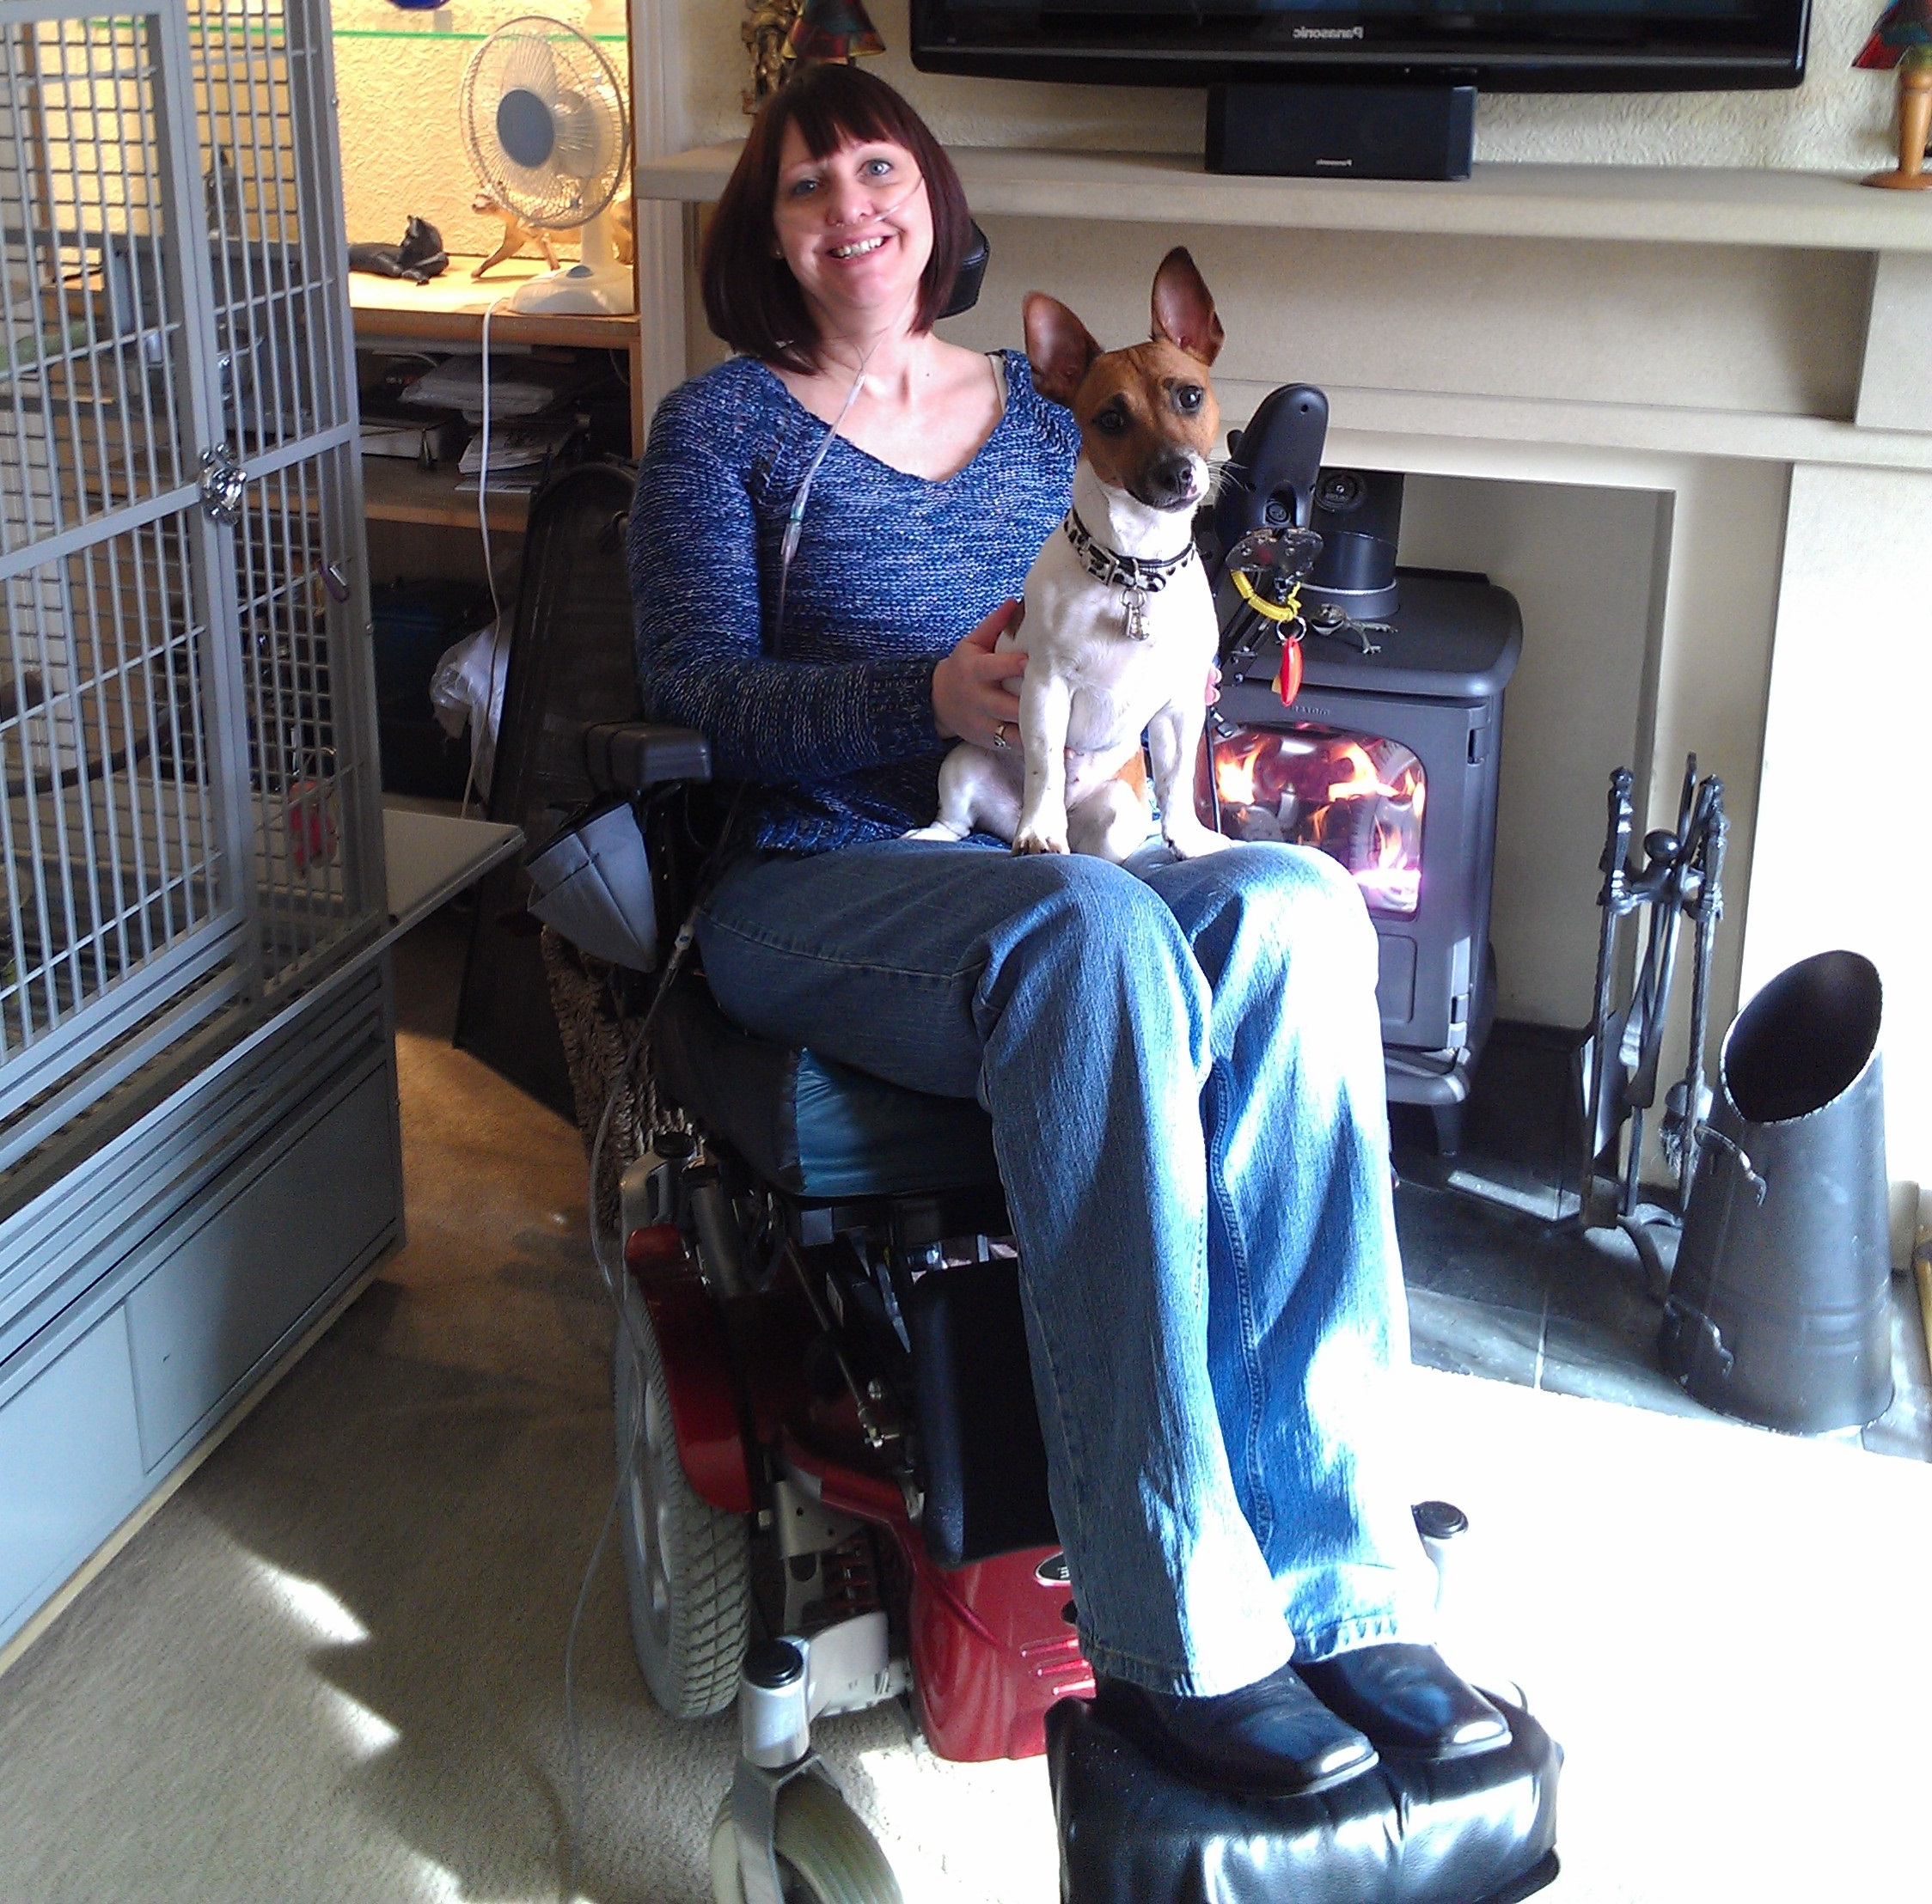 Wendy in her power chair